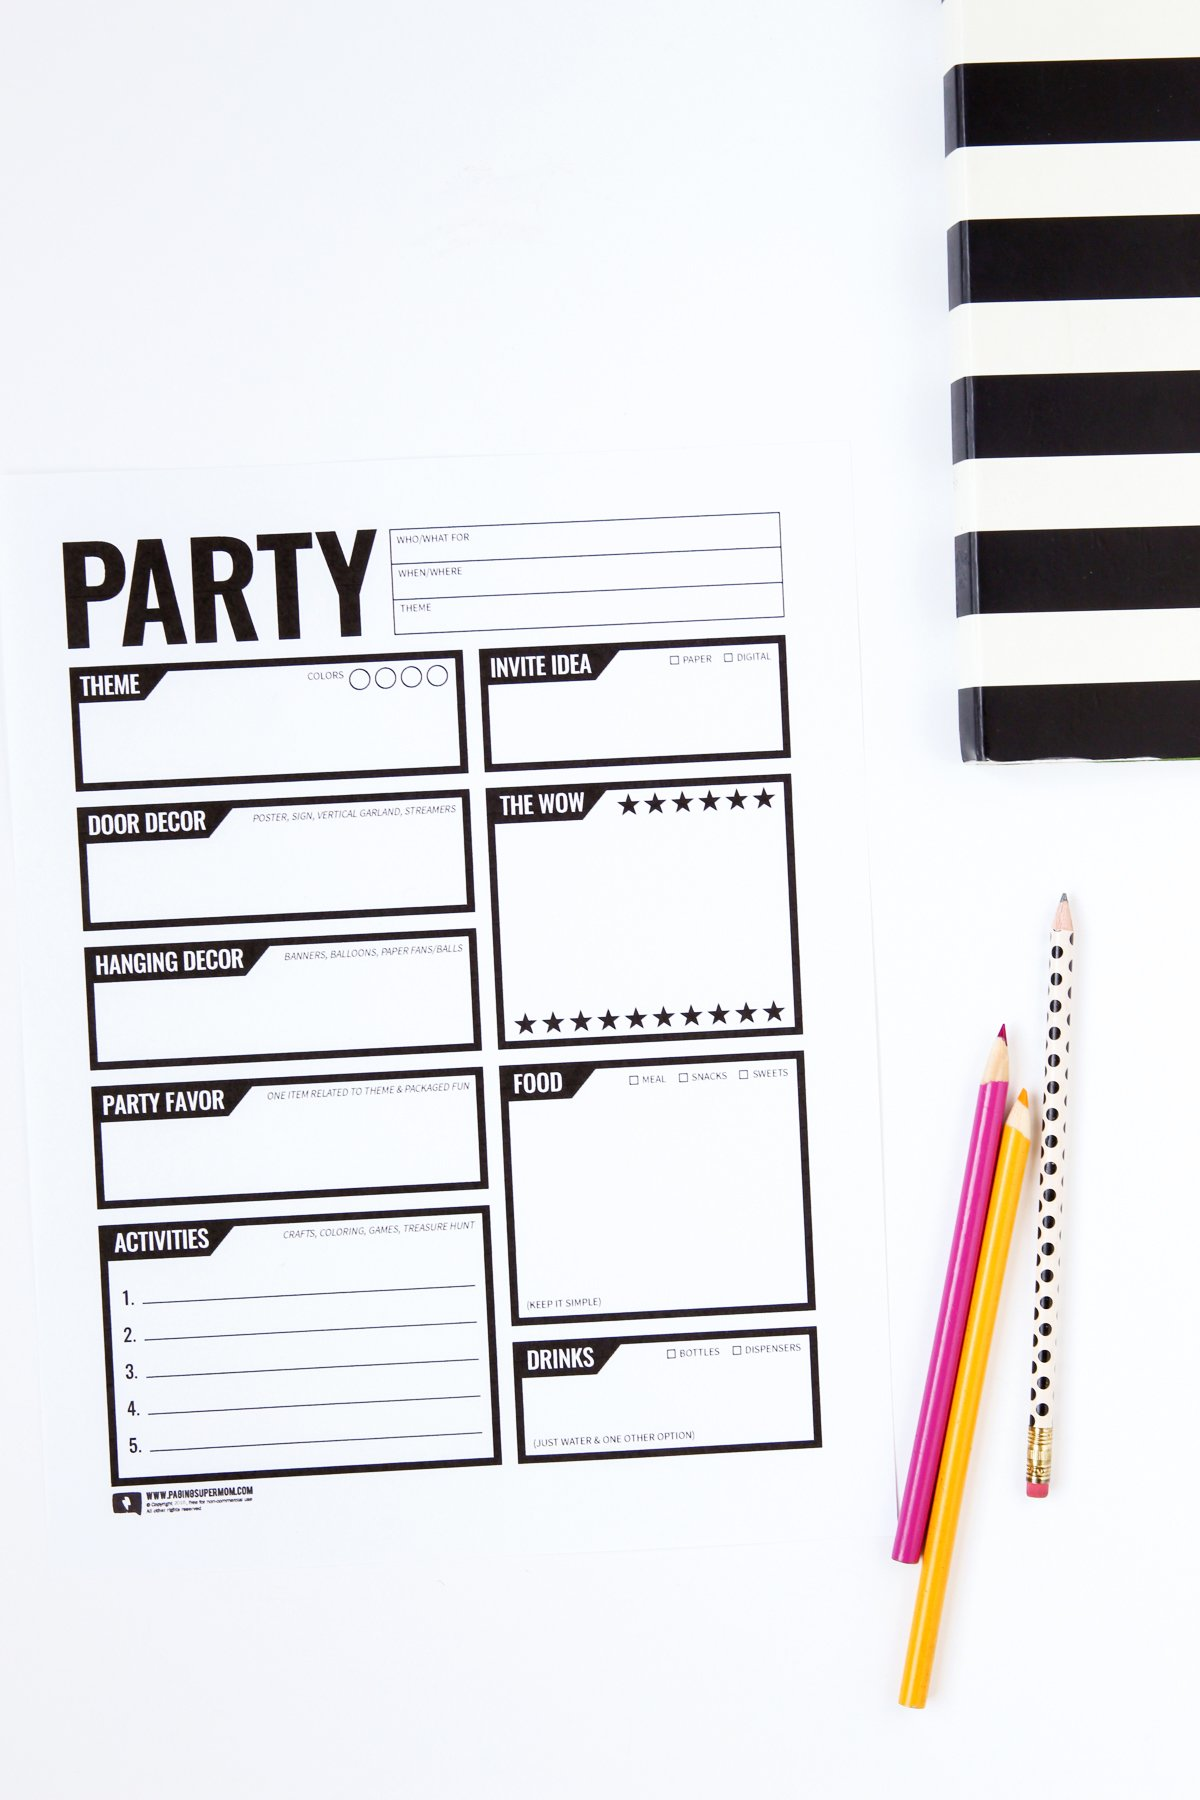 Love this free printable party planning worksheet via @PagingSupermom